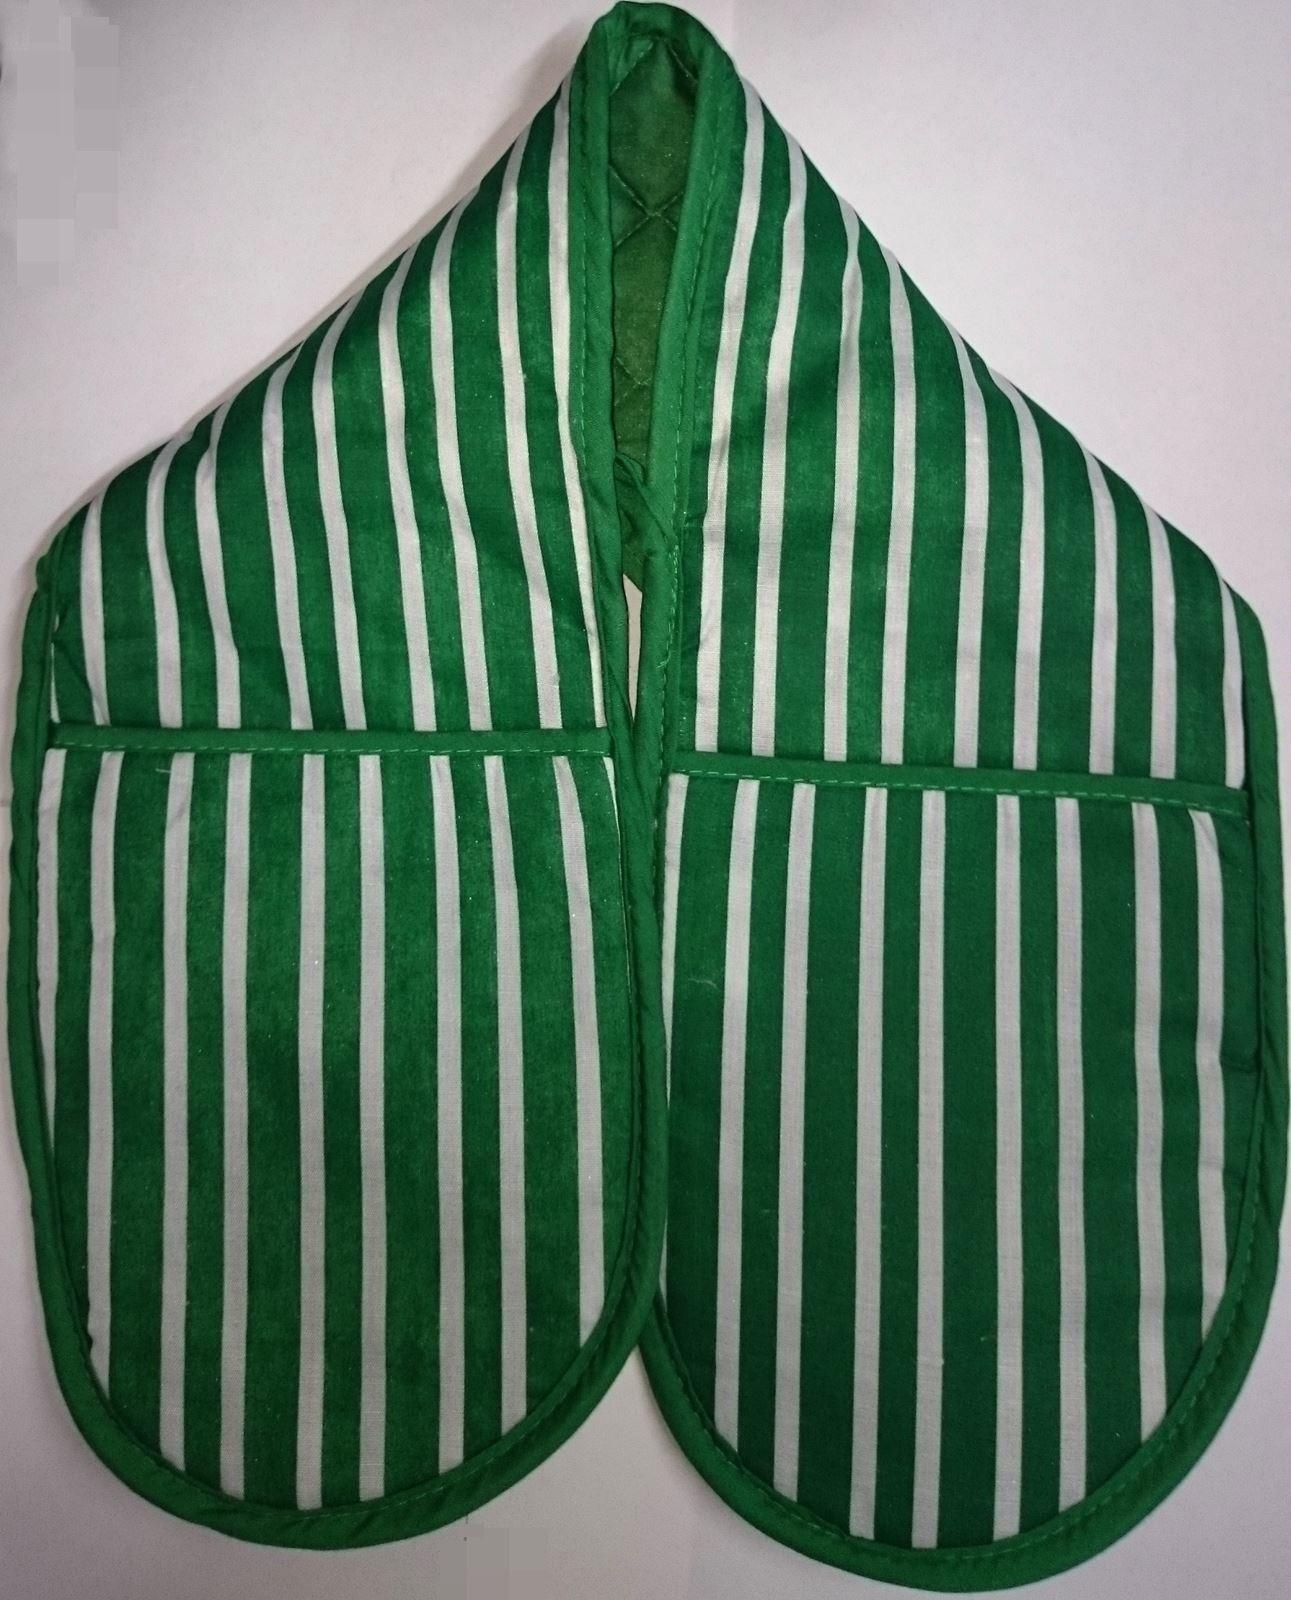 Single Double Striped Oven Glove Mitten Cotton Lined